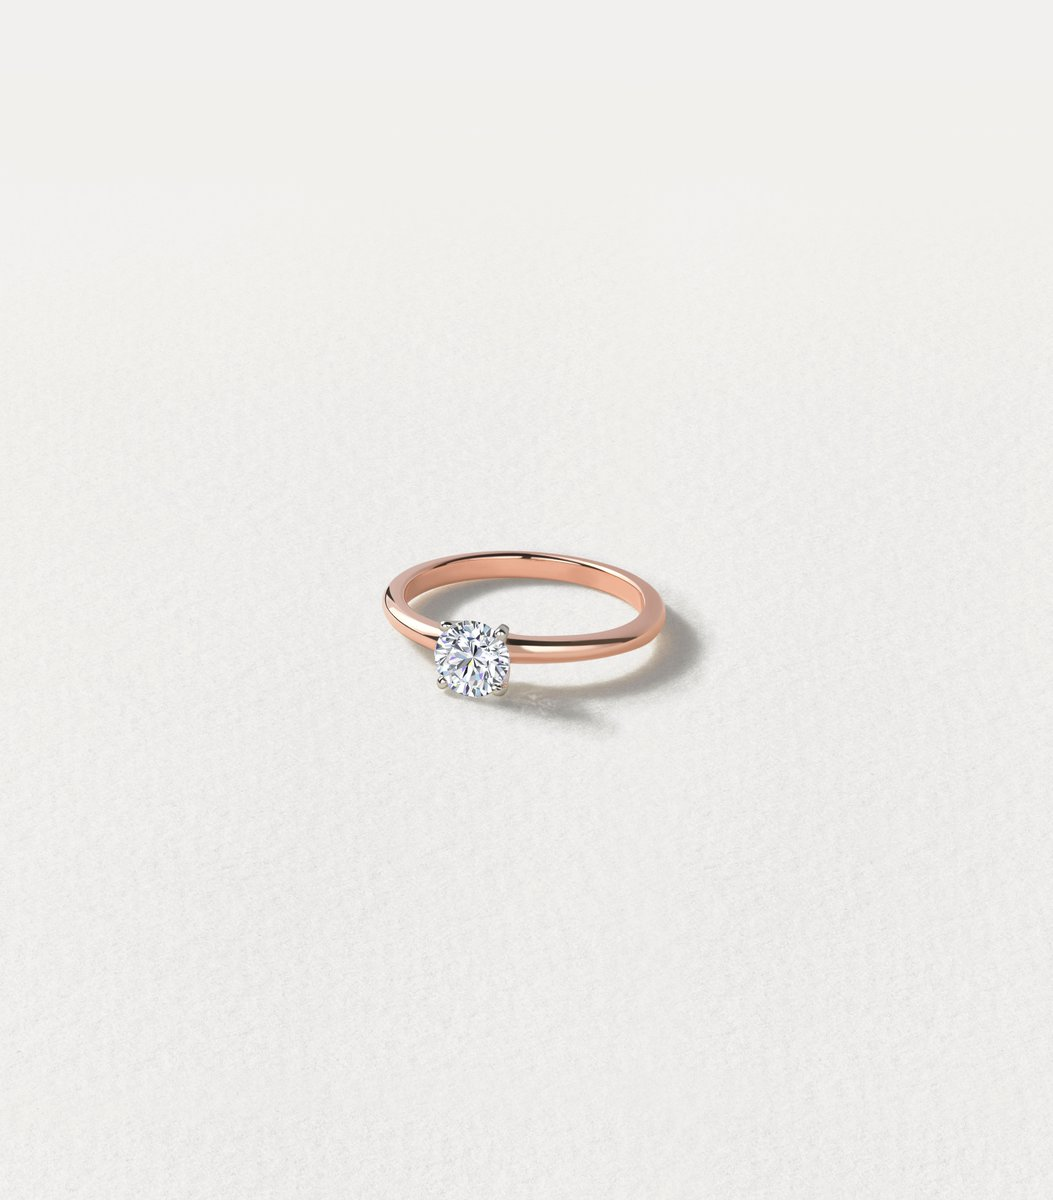 Update the classic solitaire ring by opting for a rose gold band.  #solitairering #solitairediamond #rosegoldengagementring #rosegoldring #diamondring pic.twitter.com/qAeYYRQQHy